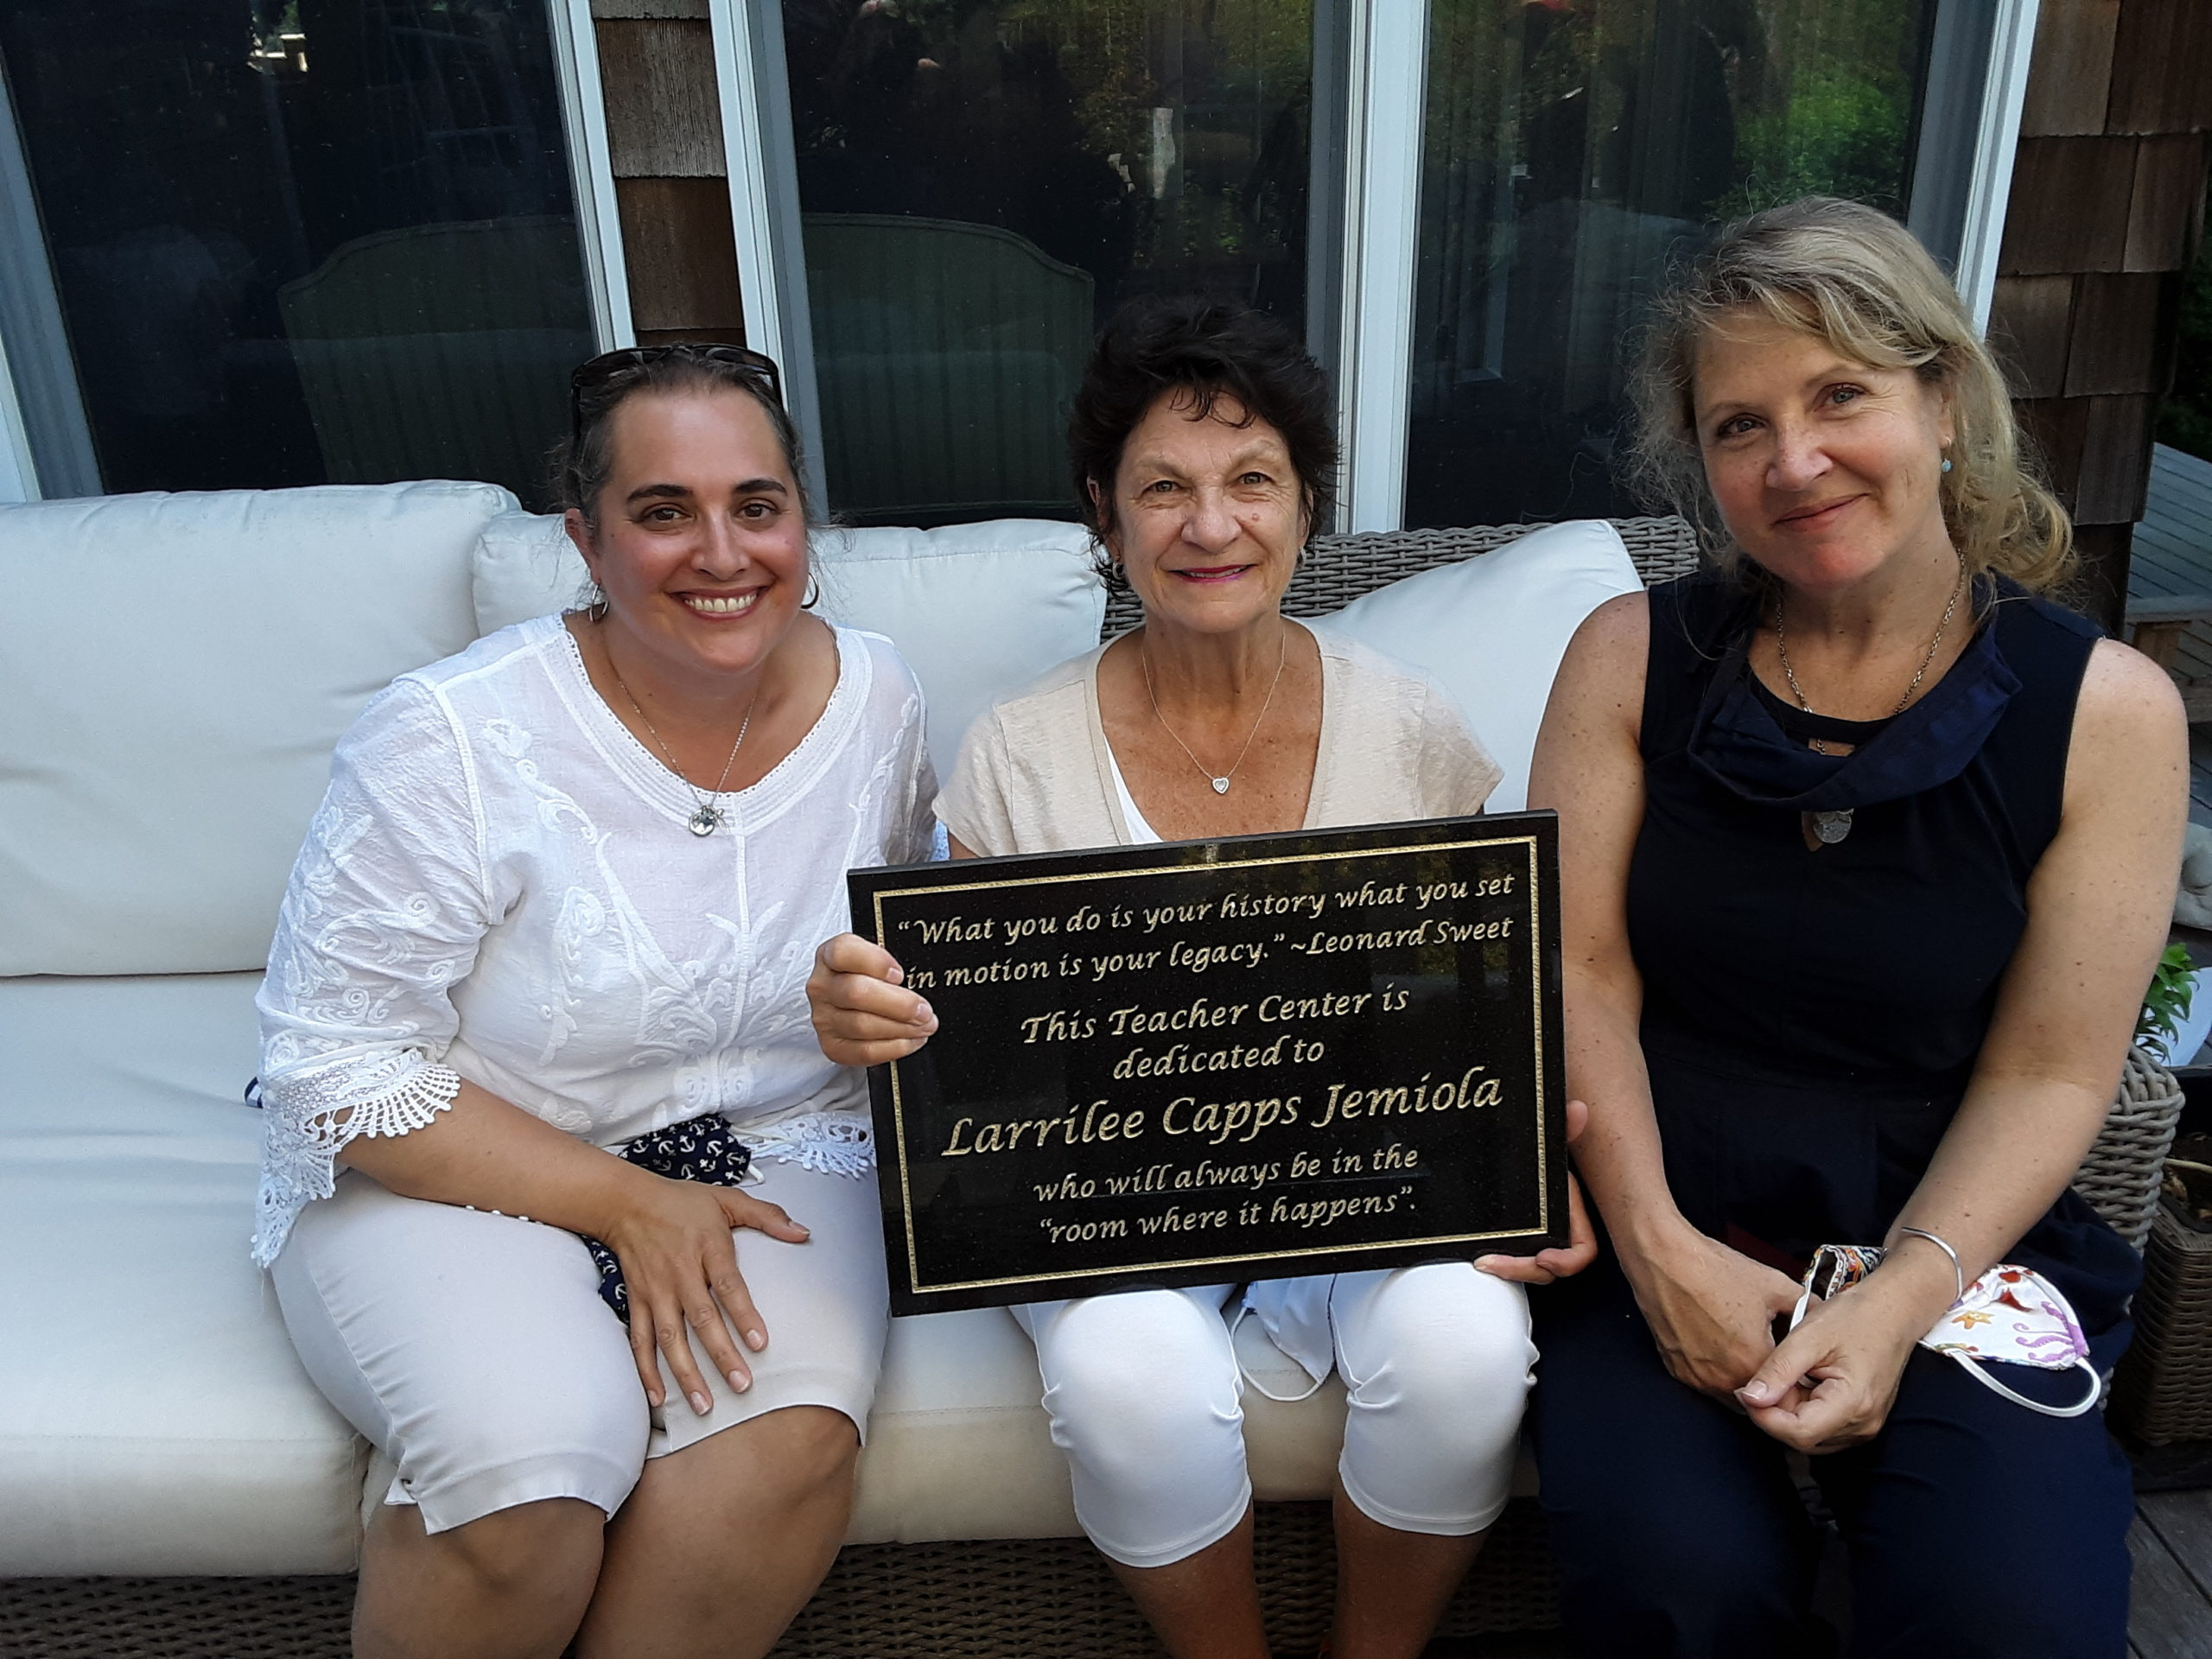 Larrilee Jemiola, an East Hampton resident who is retiring after 51 years of service to the East End educational community, is celebrated at a recent Peconic Teacher Center policy board meeting by new Co-Directors Kim Milton and Kelly Anderson.